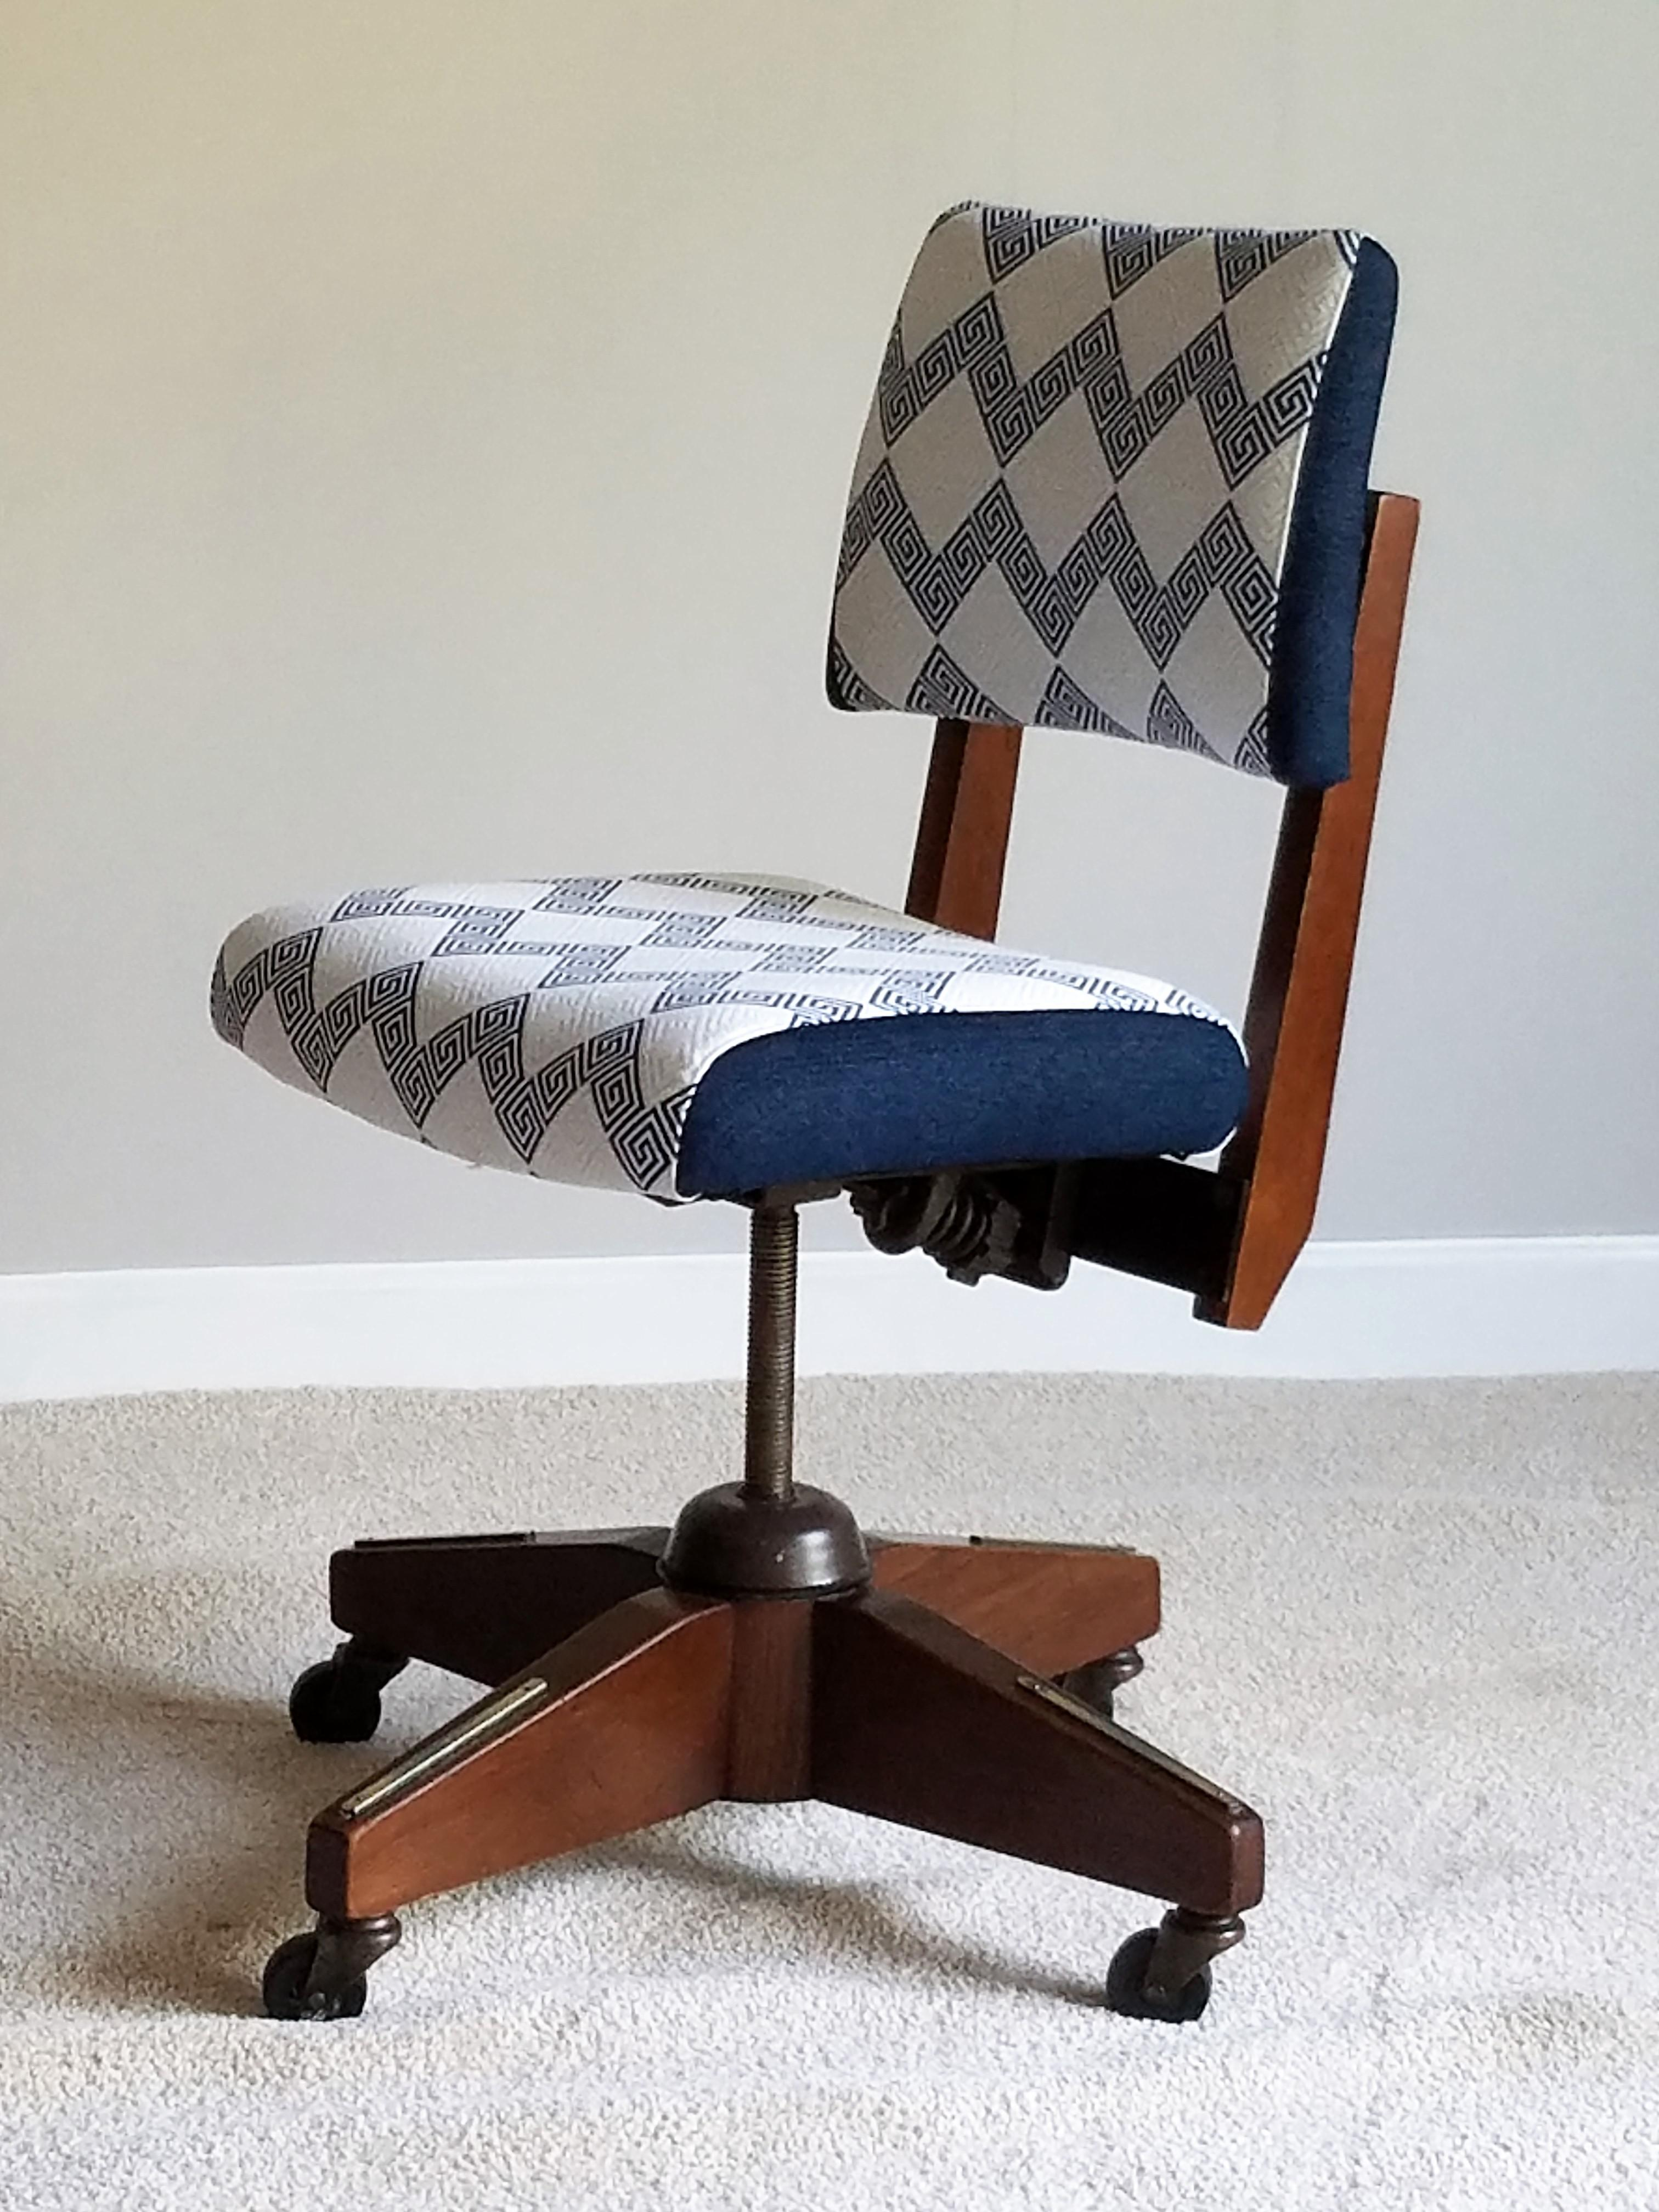 Boling Chair Company Vintage Boling Chair Company Walnut Desk Chair For  Sale   Image 4 Of